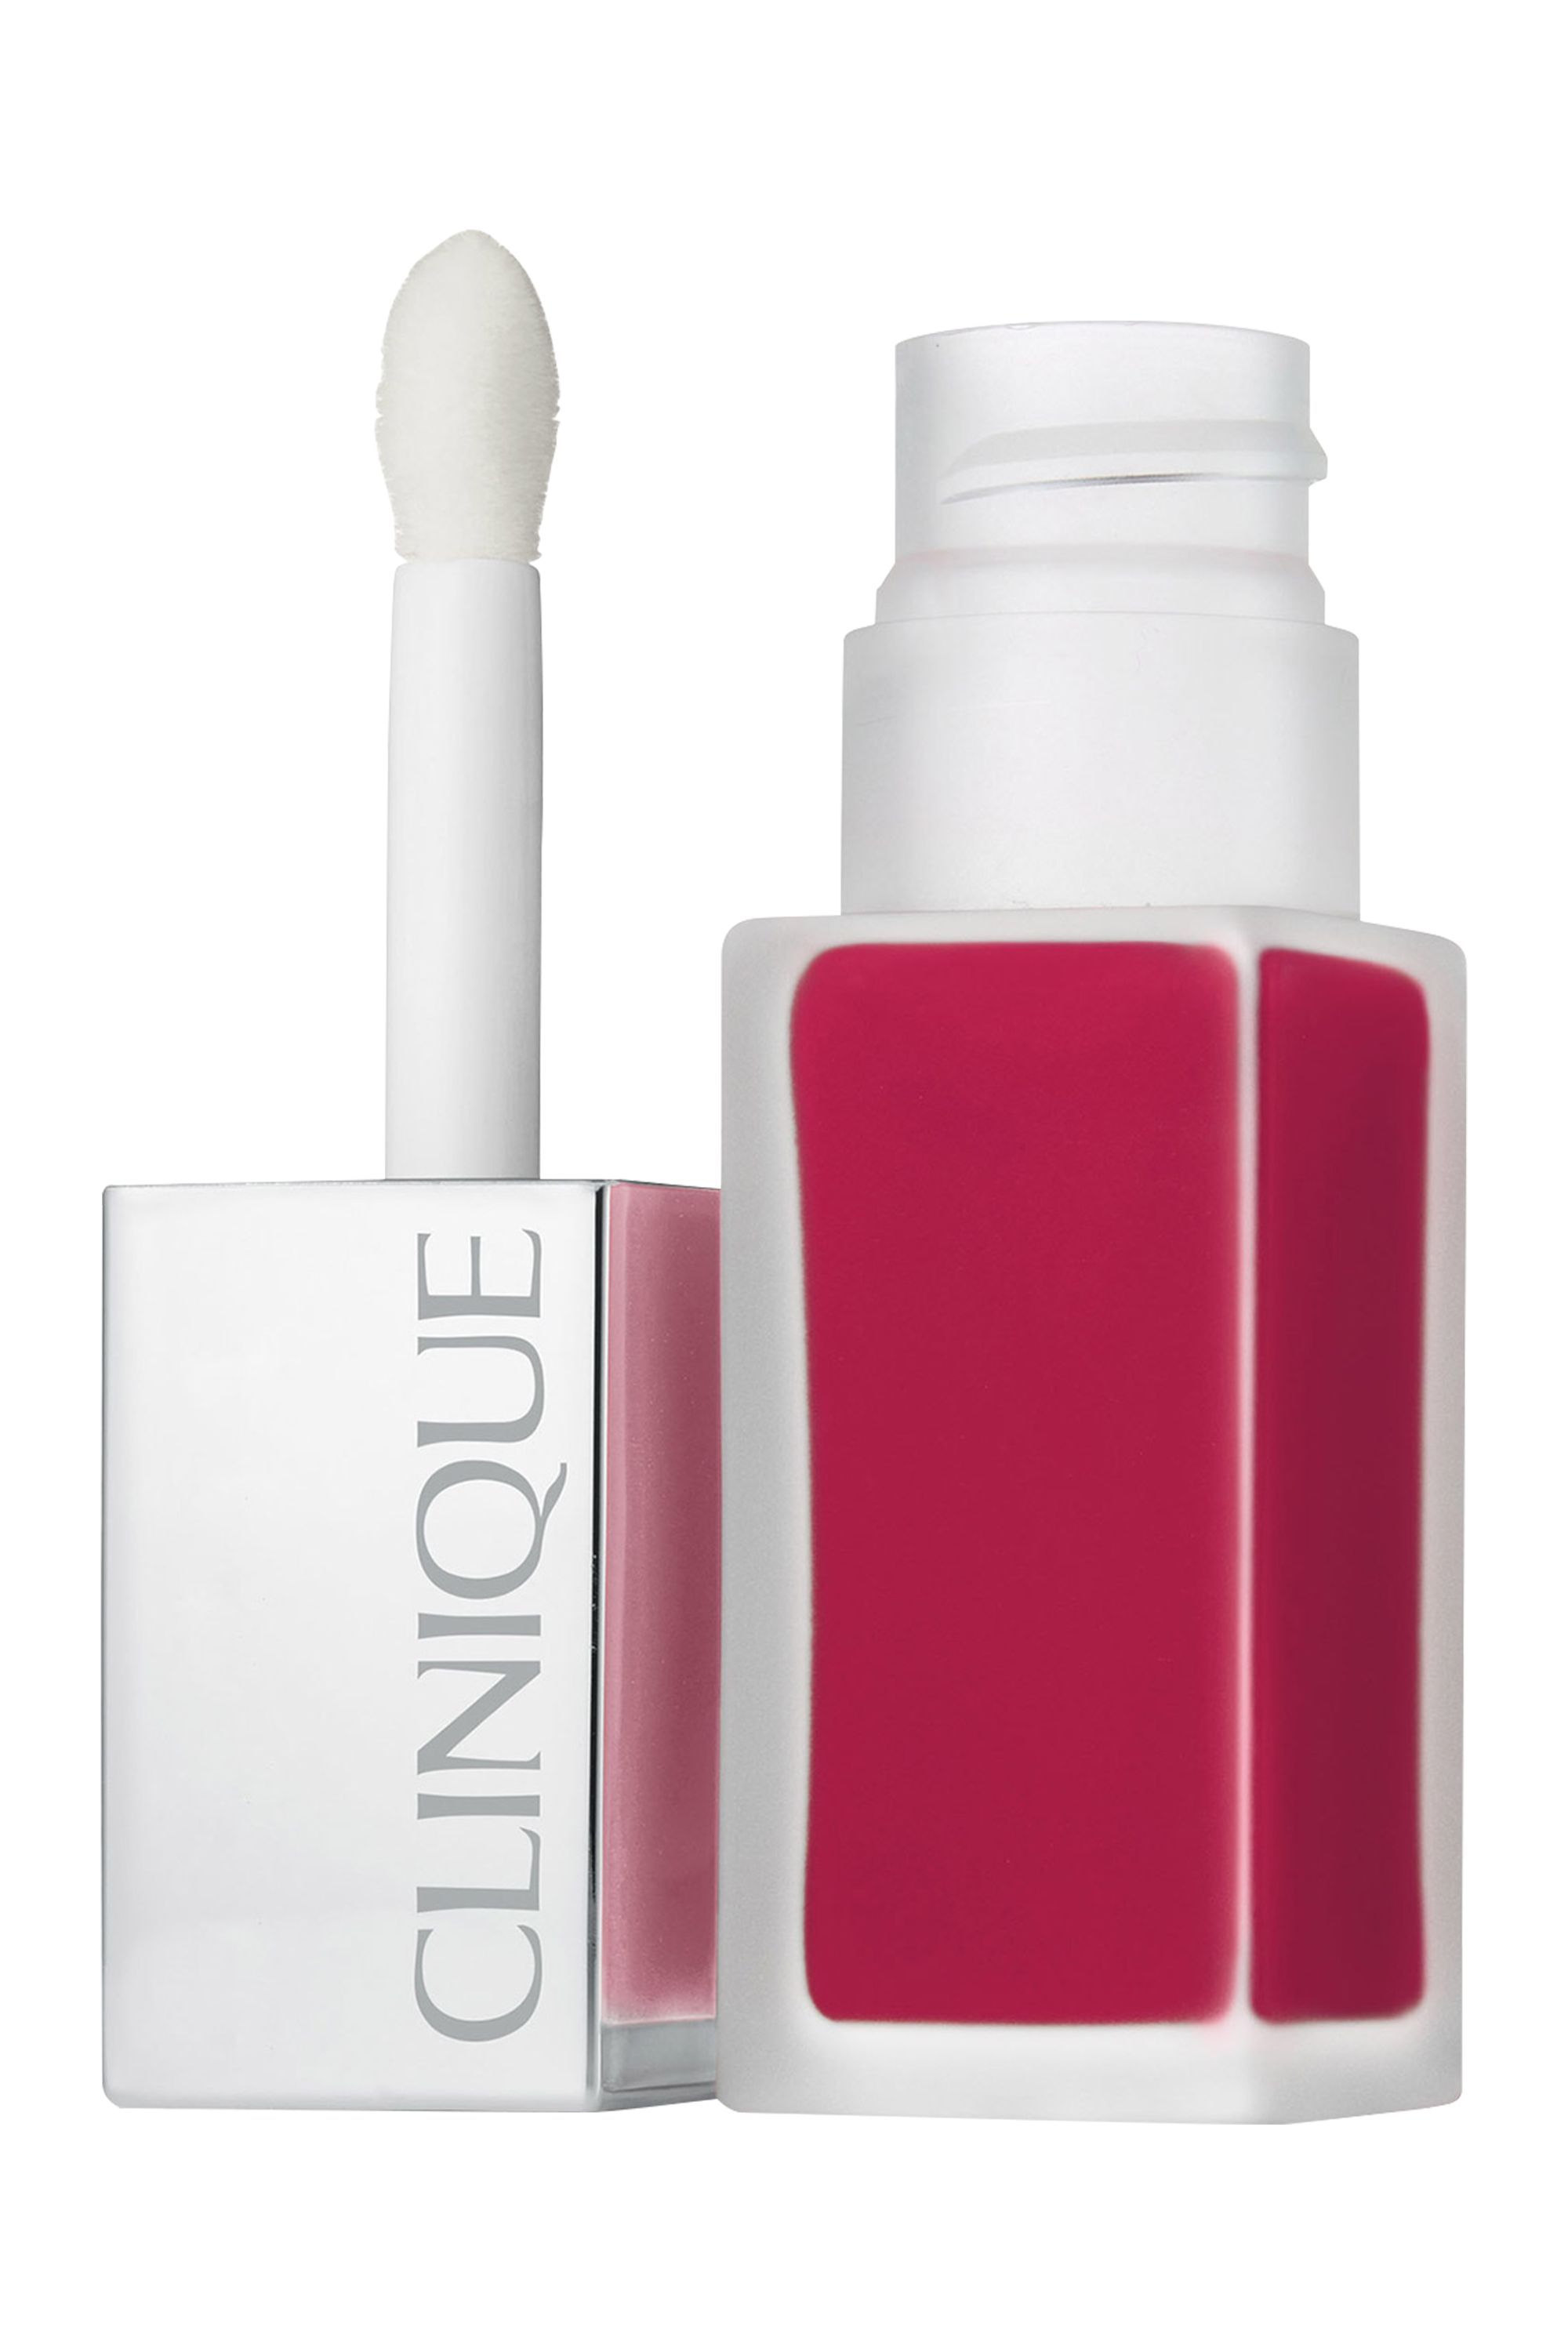 Blissim : Clinique - Rouge à lèvres laque fini mat + base lissante Clinique Pop™ - Sweetheart Pop